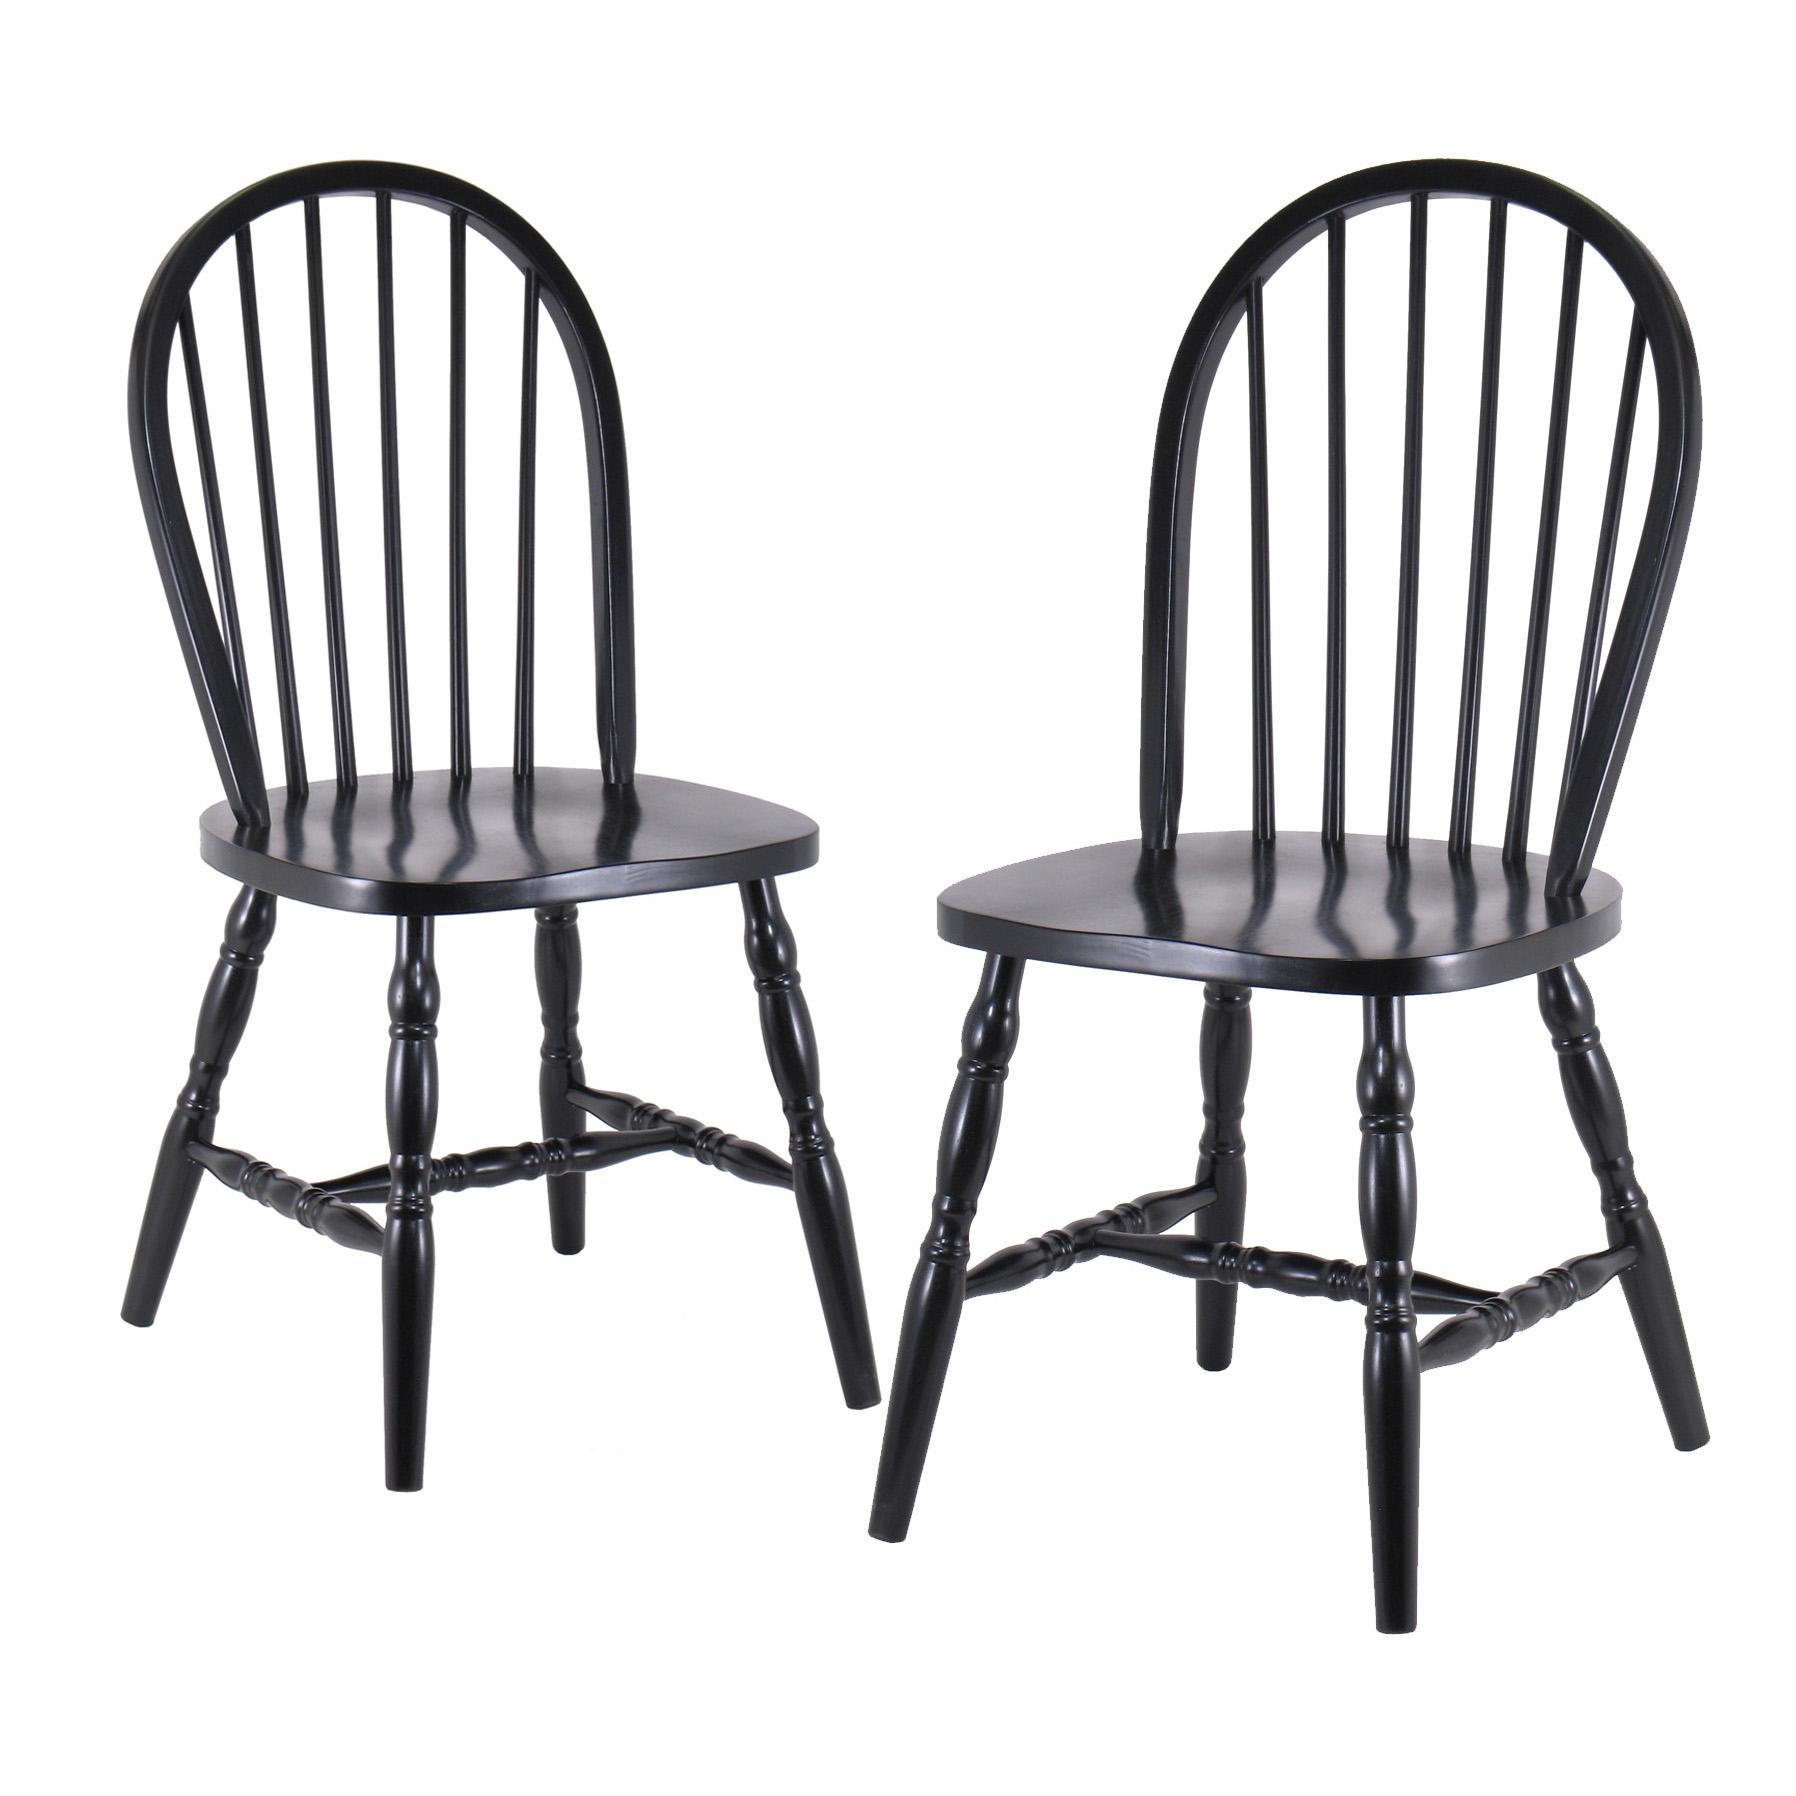 Winsome Wood Assembled 29 Inch Windsor Chairs Set of 2 Black